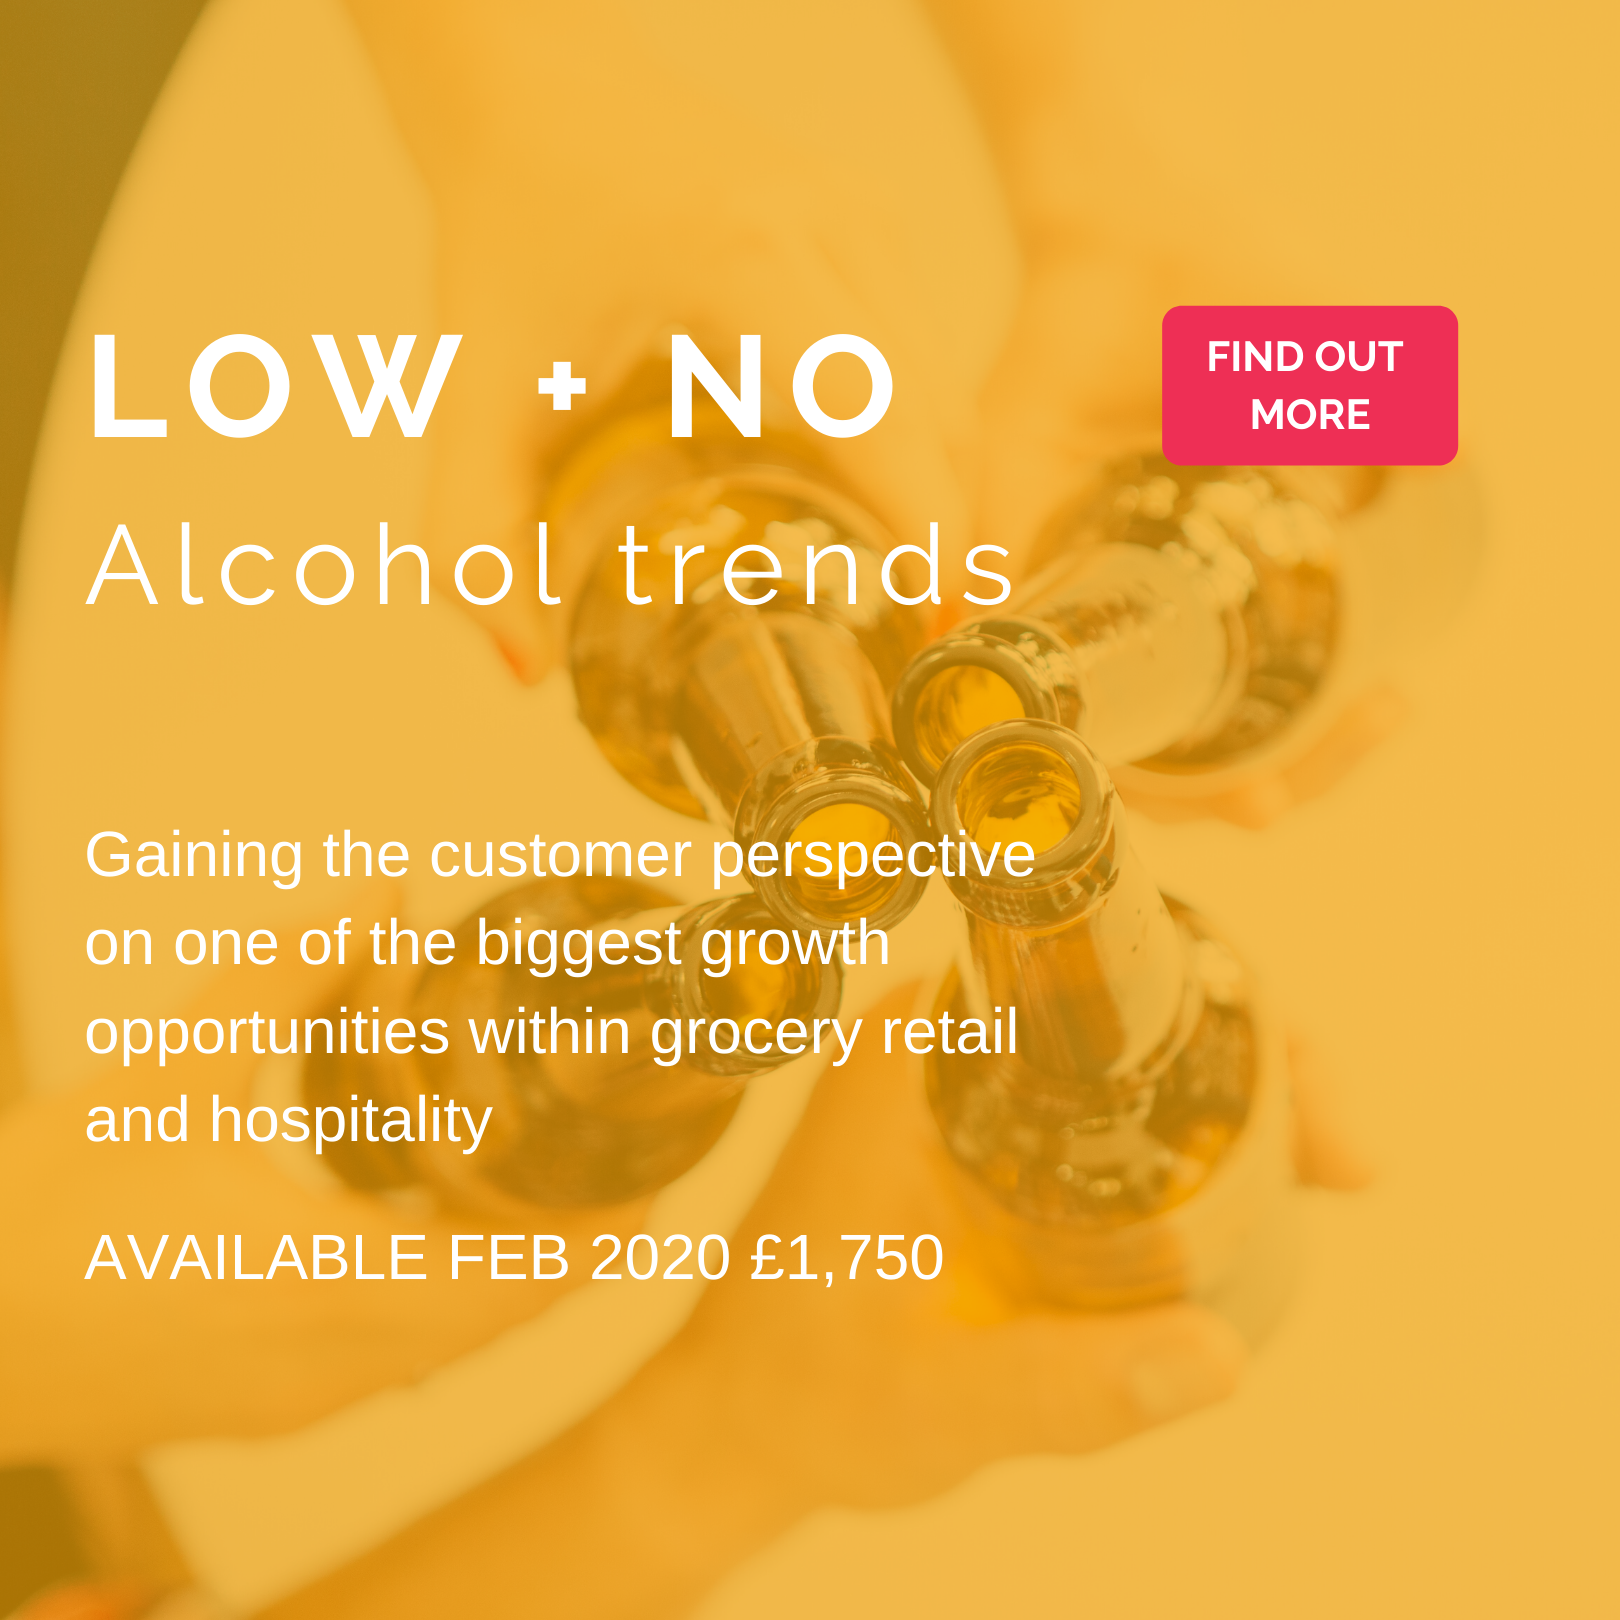 Low and No alcohol trends